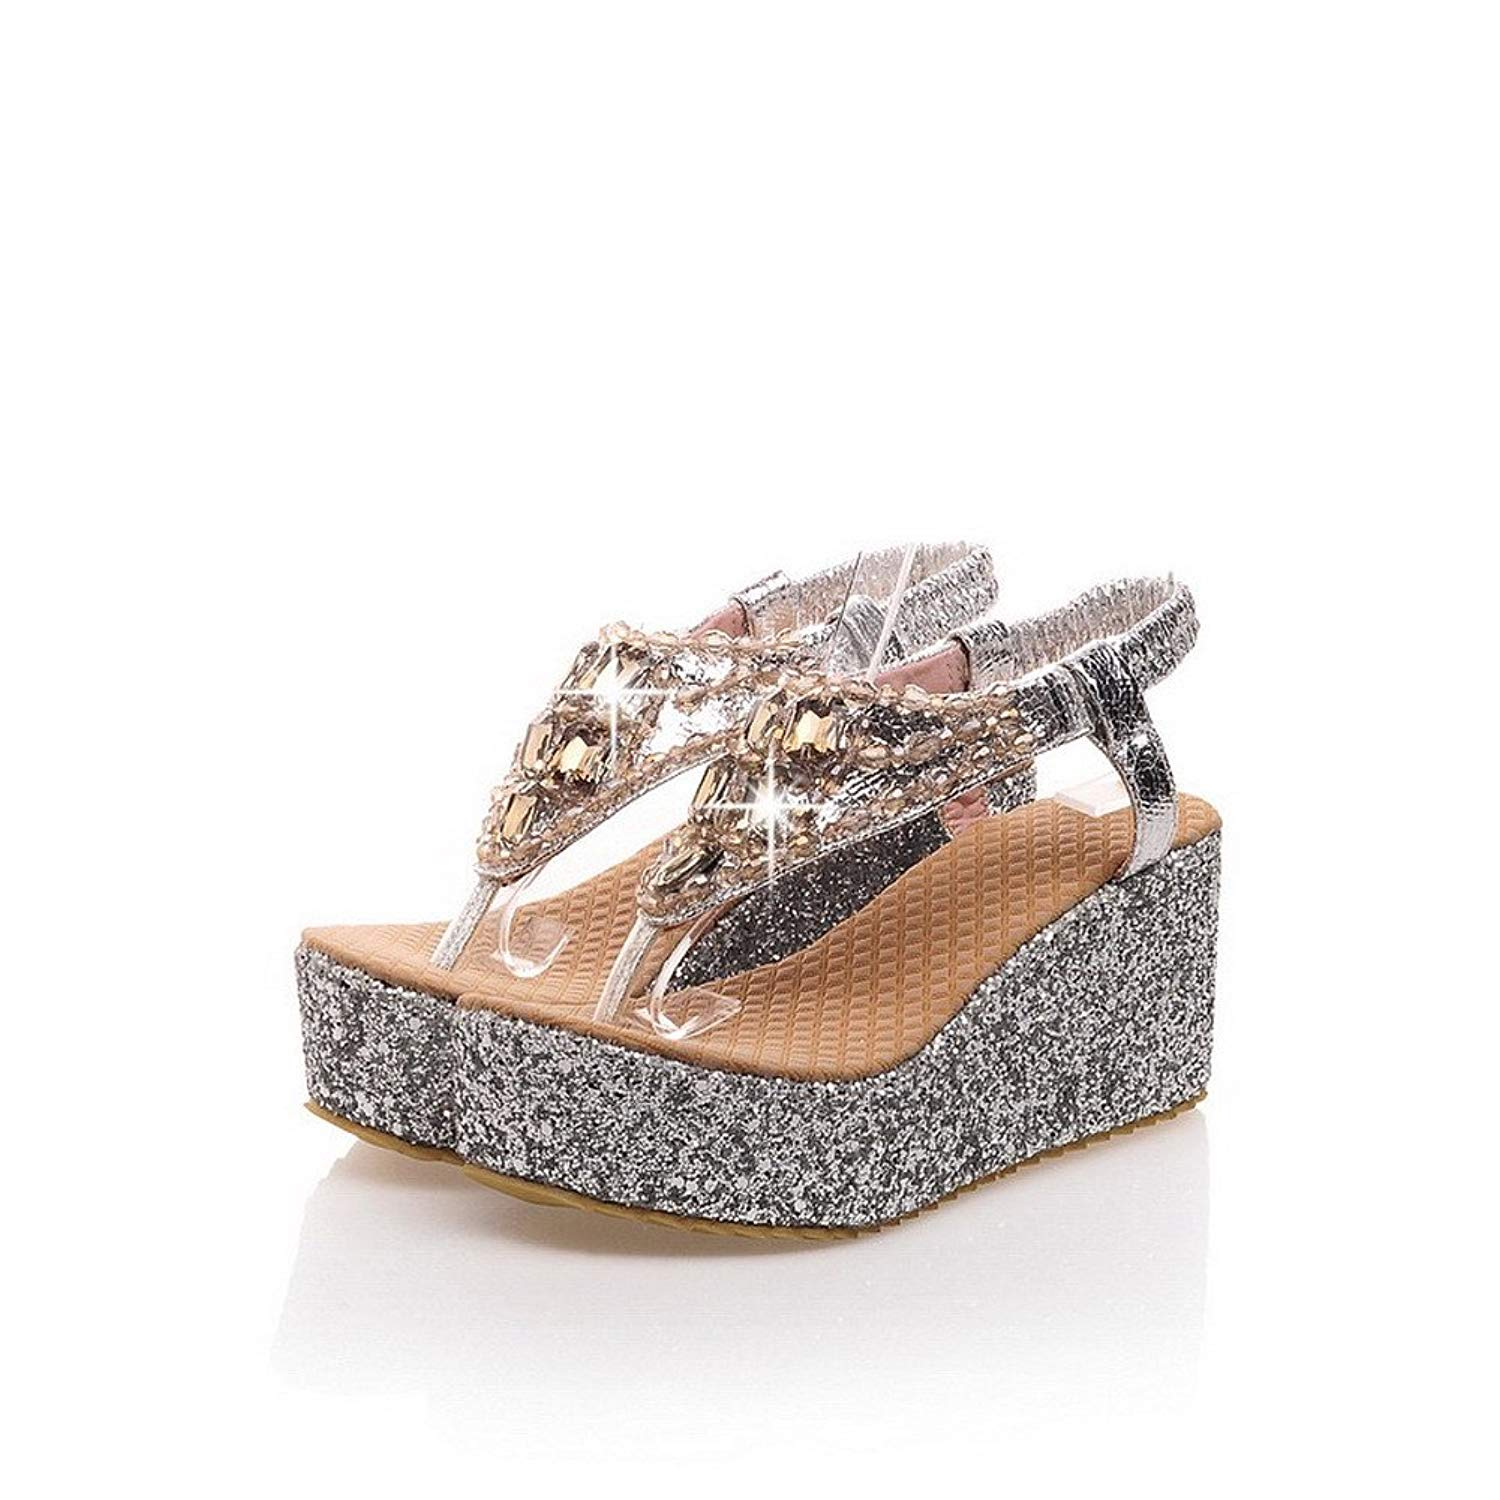 652b9f56d8a0 Get Quotations · WeenFashion Womans Thong Open Toe Kitten Heels Wedge PU  Soft Material Solid Sandals with Glass Diamond